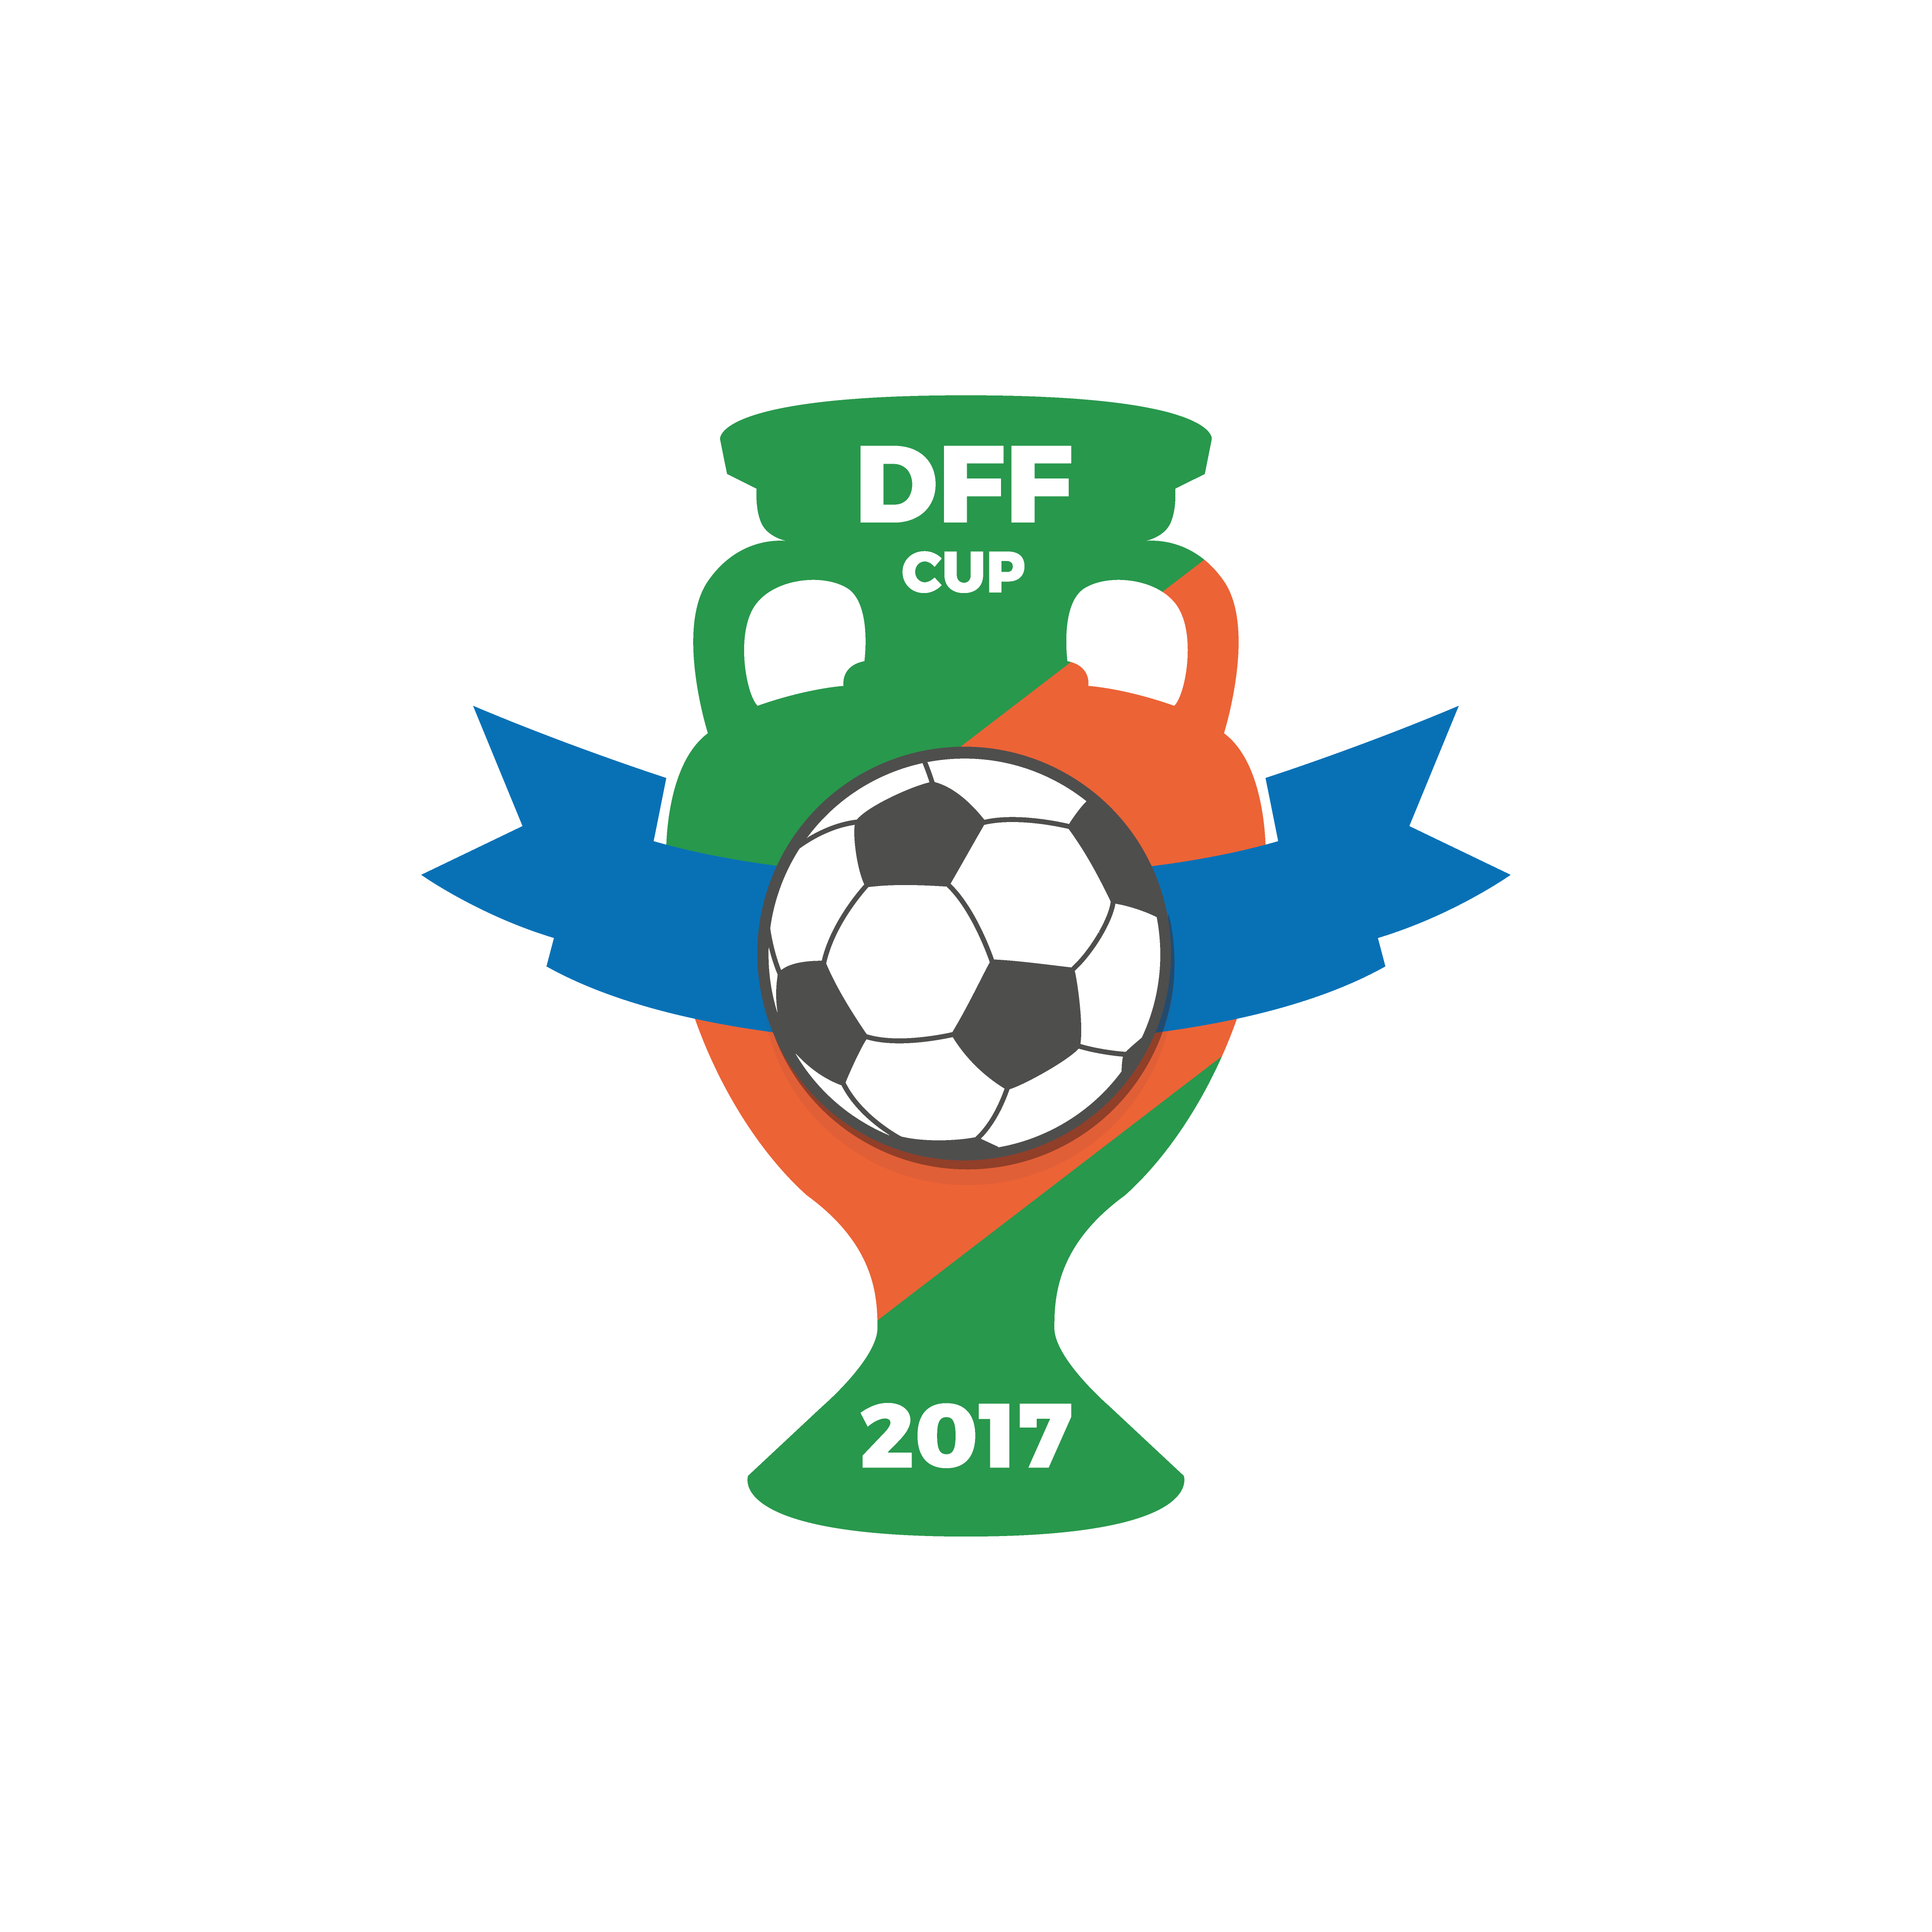 Delhi Friendship Football Cup 2017